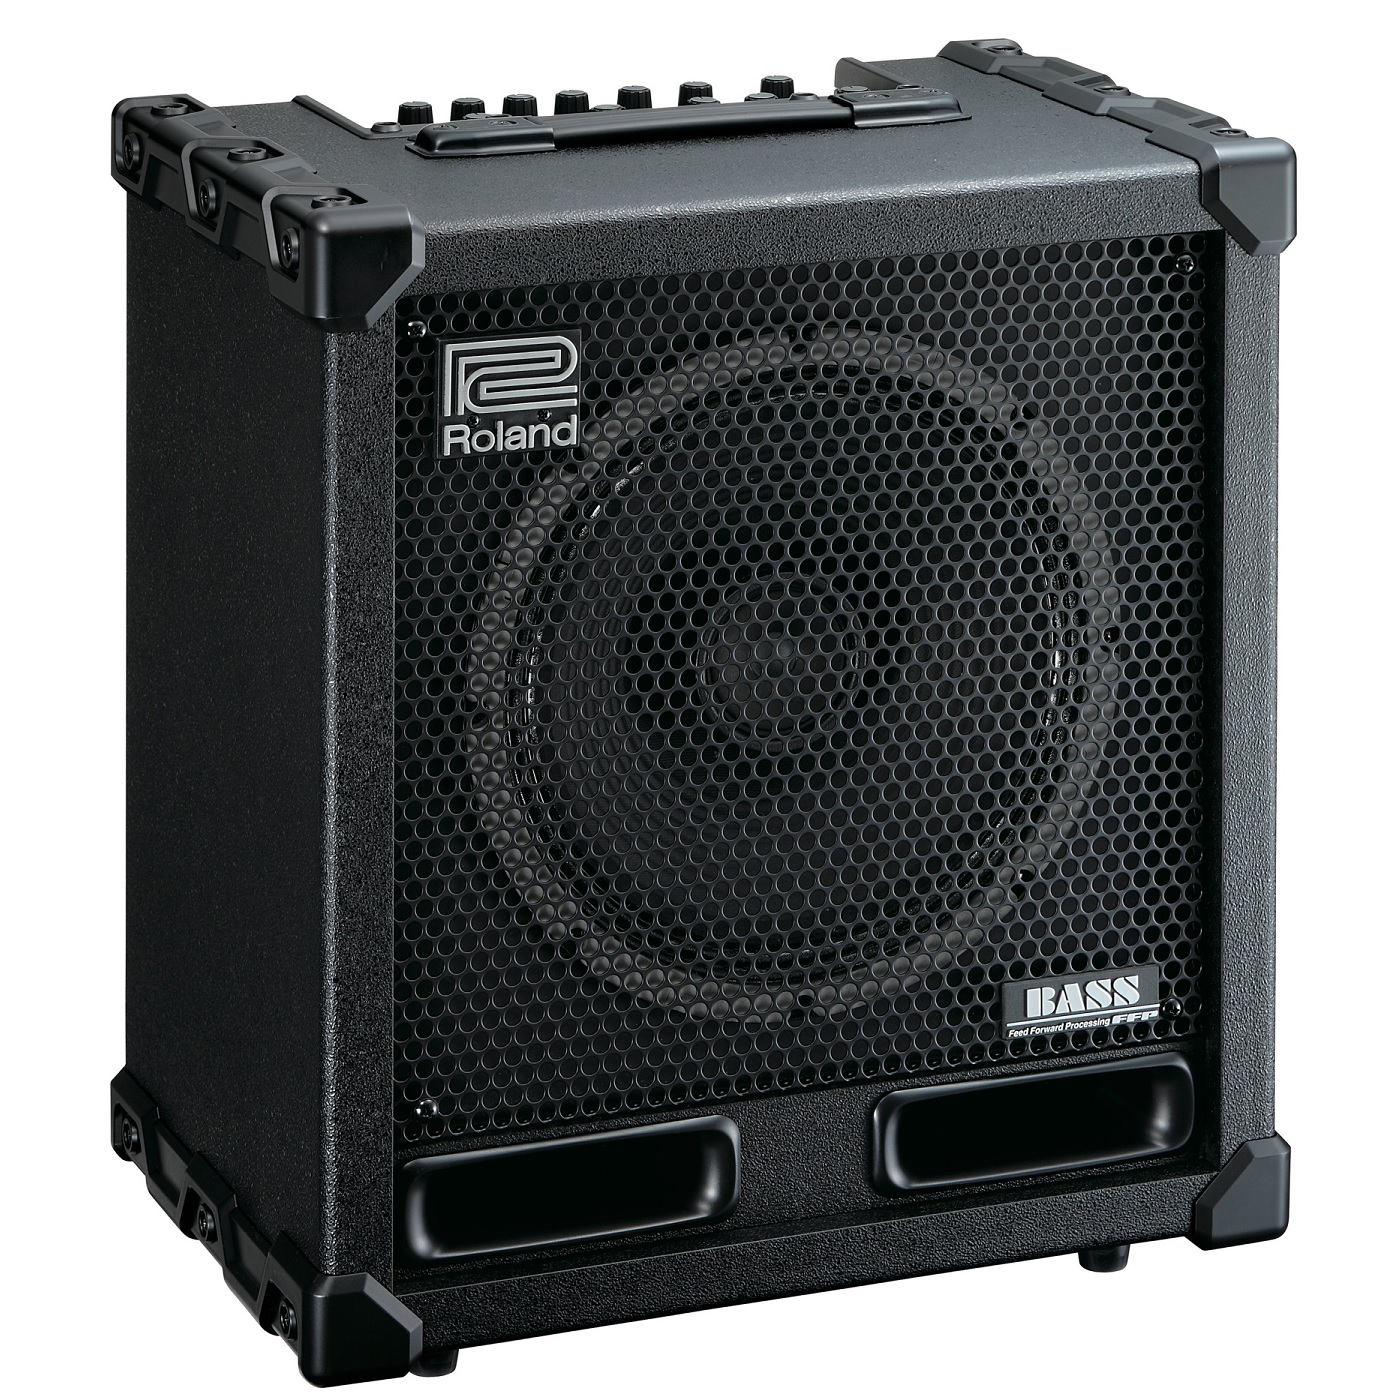 Roland Bass CUBE-120XL Guitar Amplifier